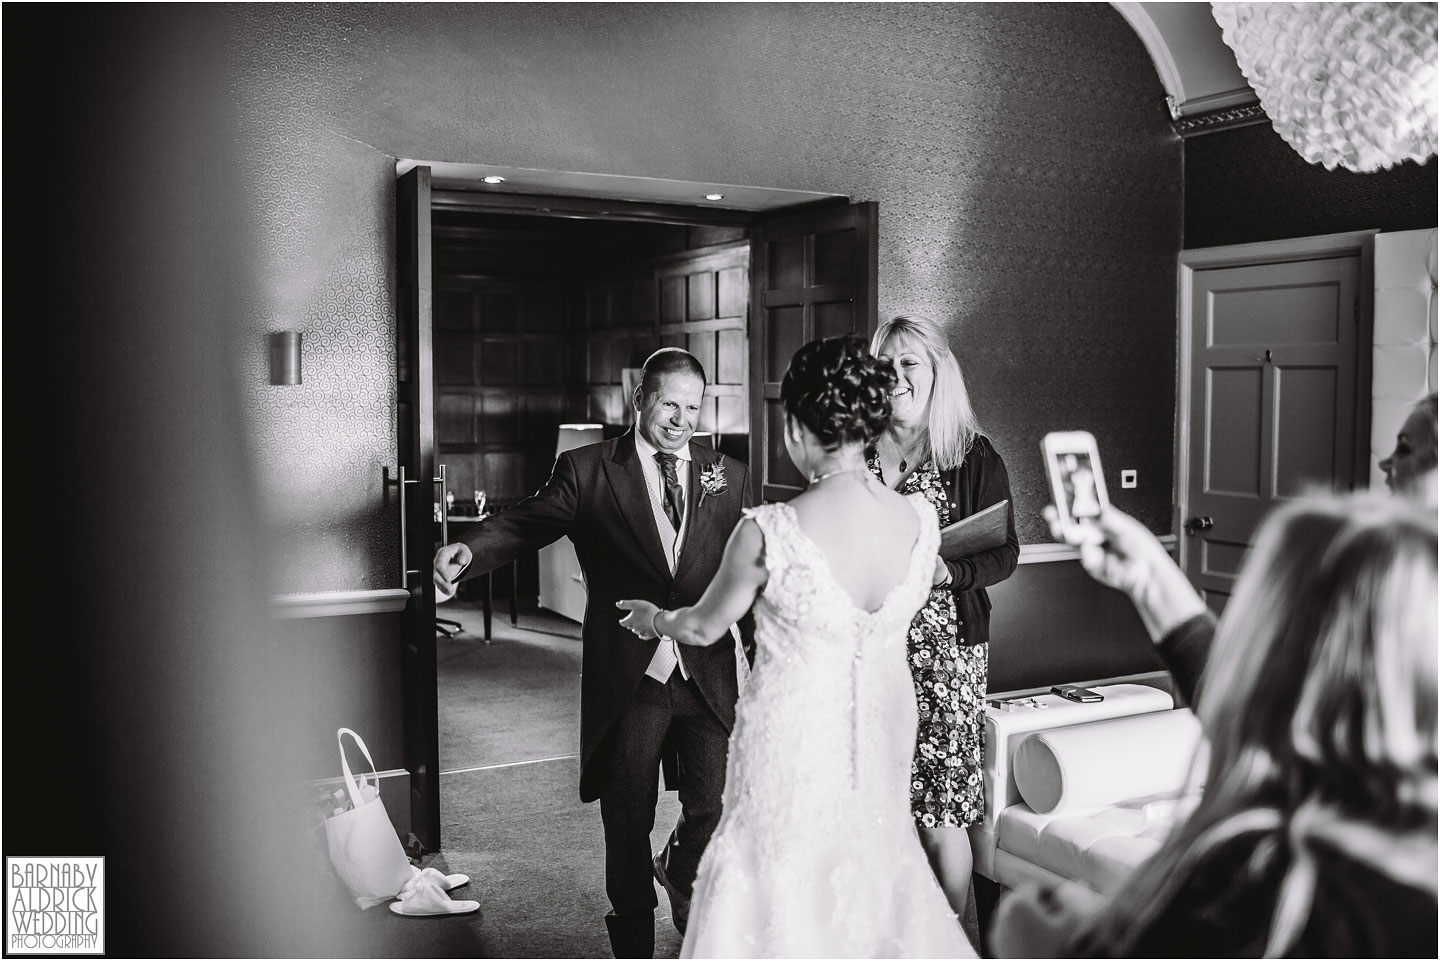 Father daughter wedding moment at Thornbridge Hall Derbyshire Wedding Photos, Thornbridge Hall Wedding Photography, Autumnal Derbyshire Wedding, Derbyshire Wedding Photographer